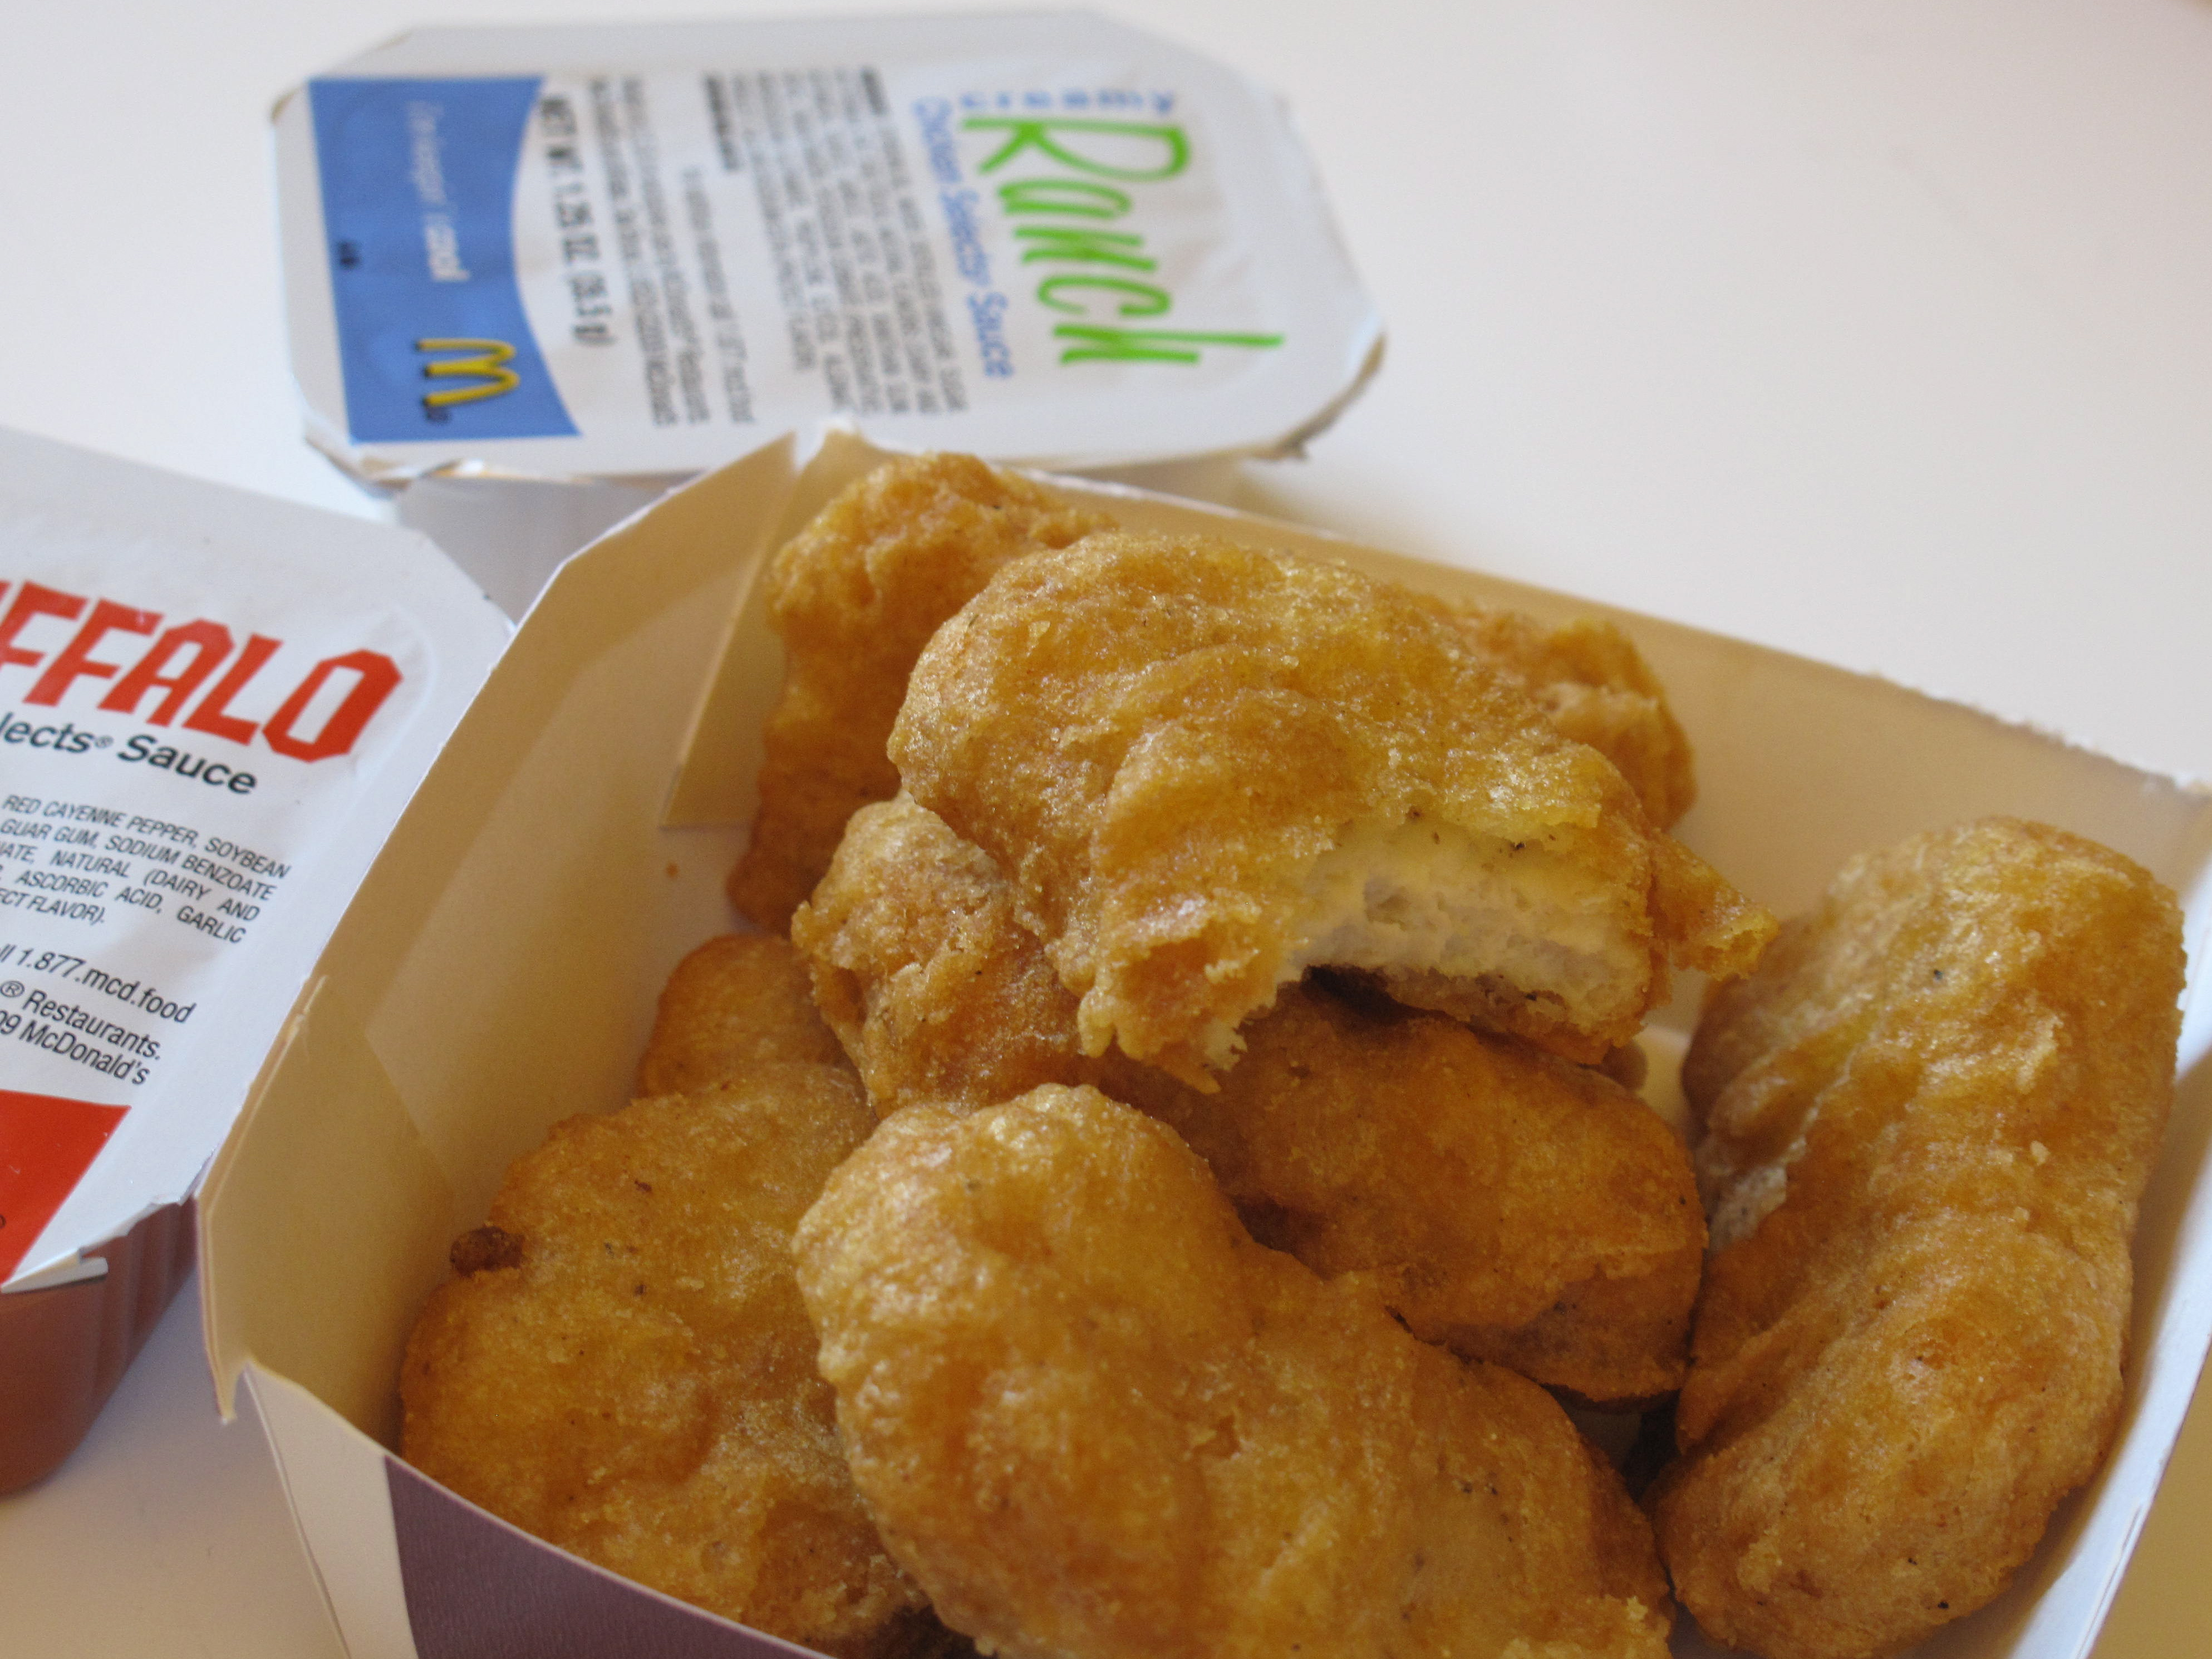 The McDonald's Chicken McNuggets and their sauces.